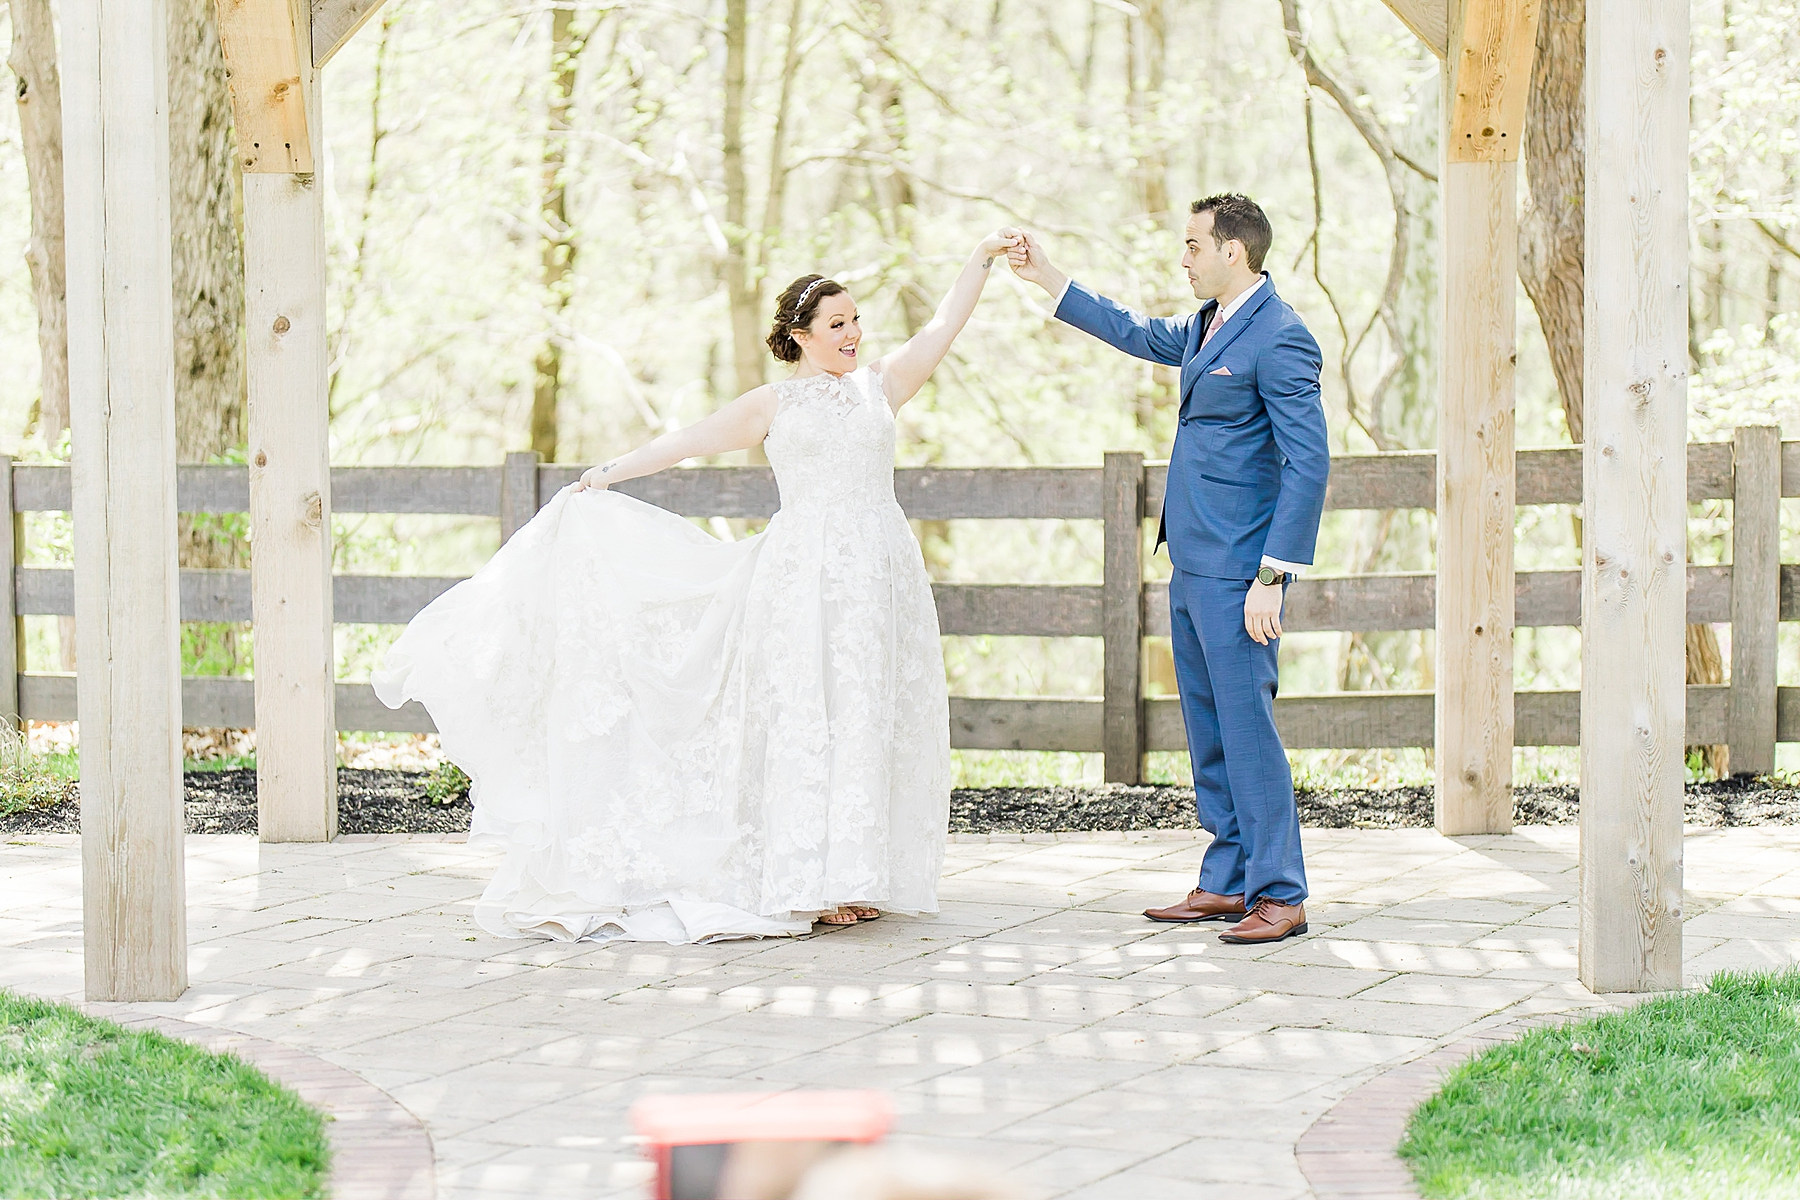 west lafayette indiana wedding photography How to Have an Organized Wedding Planning Process reduce stress wedding planning_0221.jpg